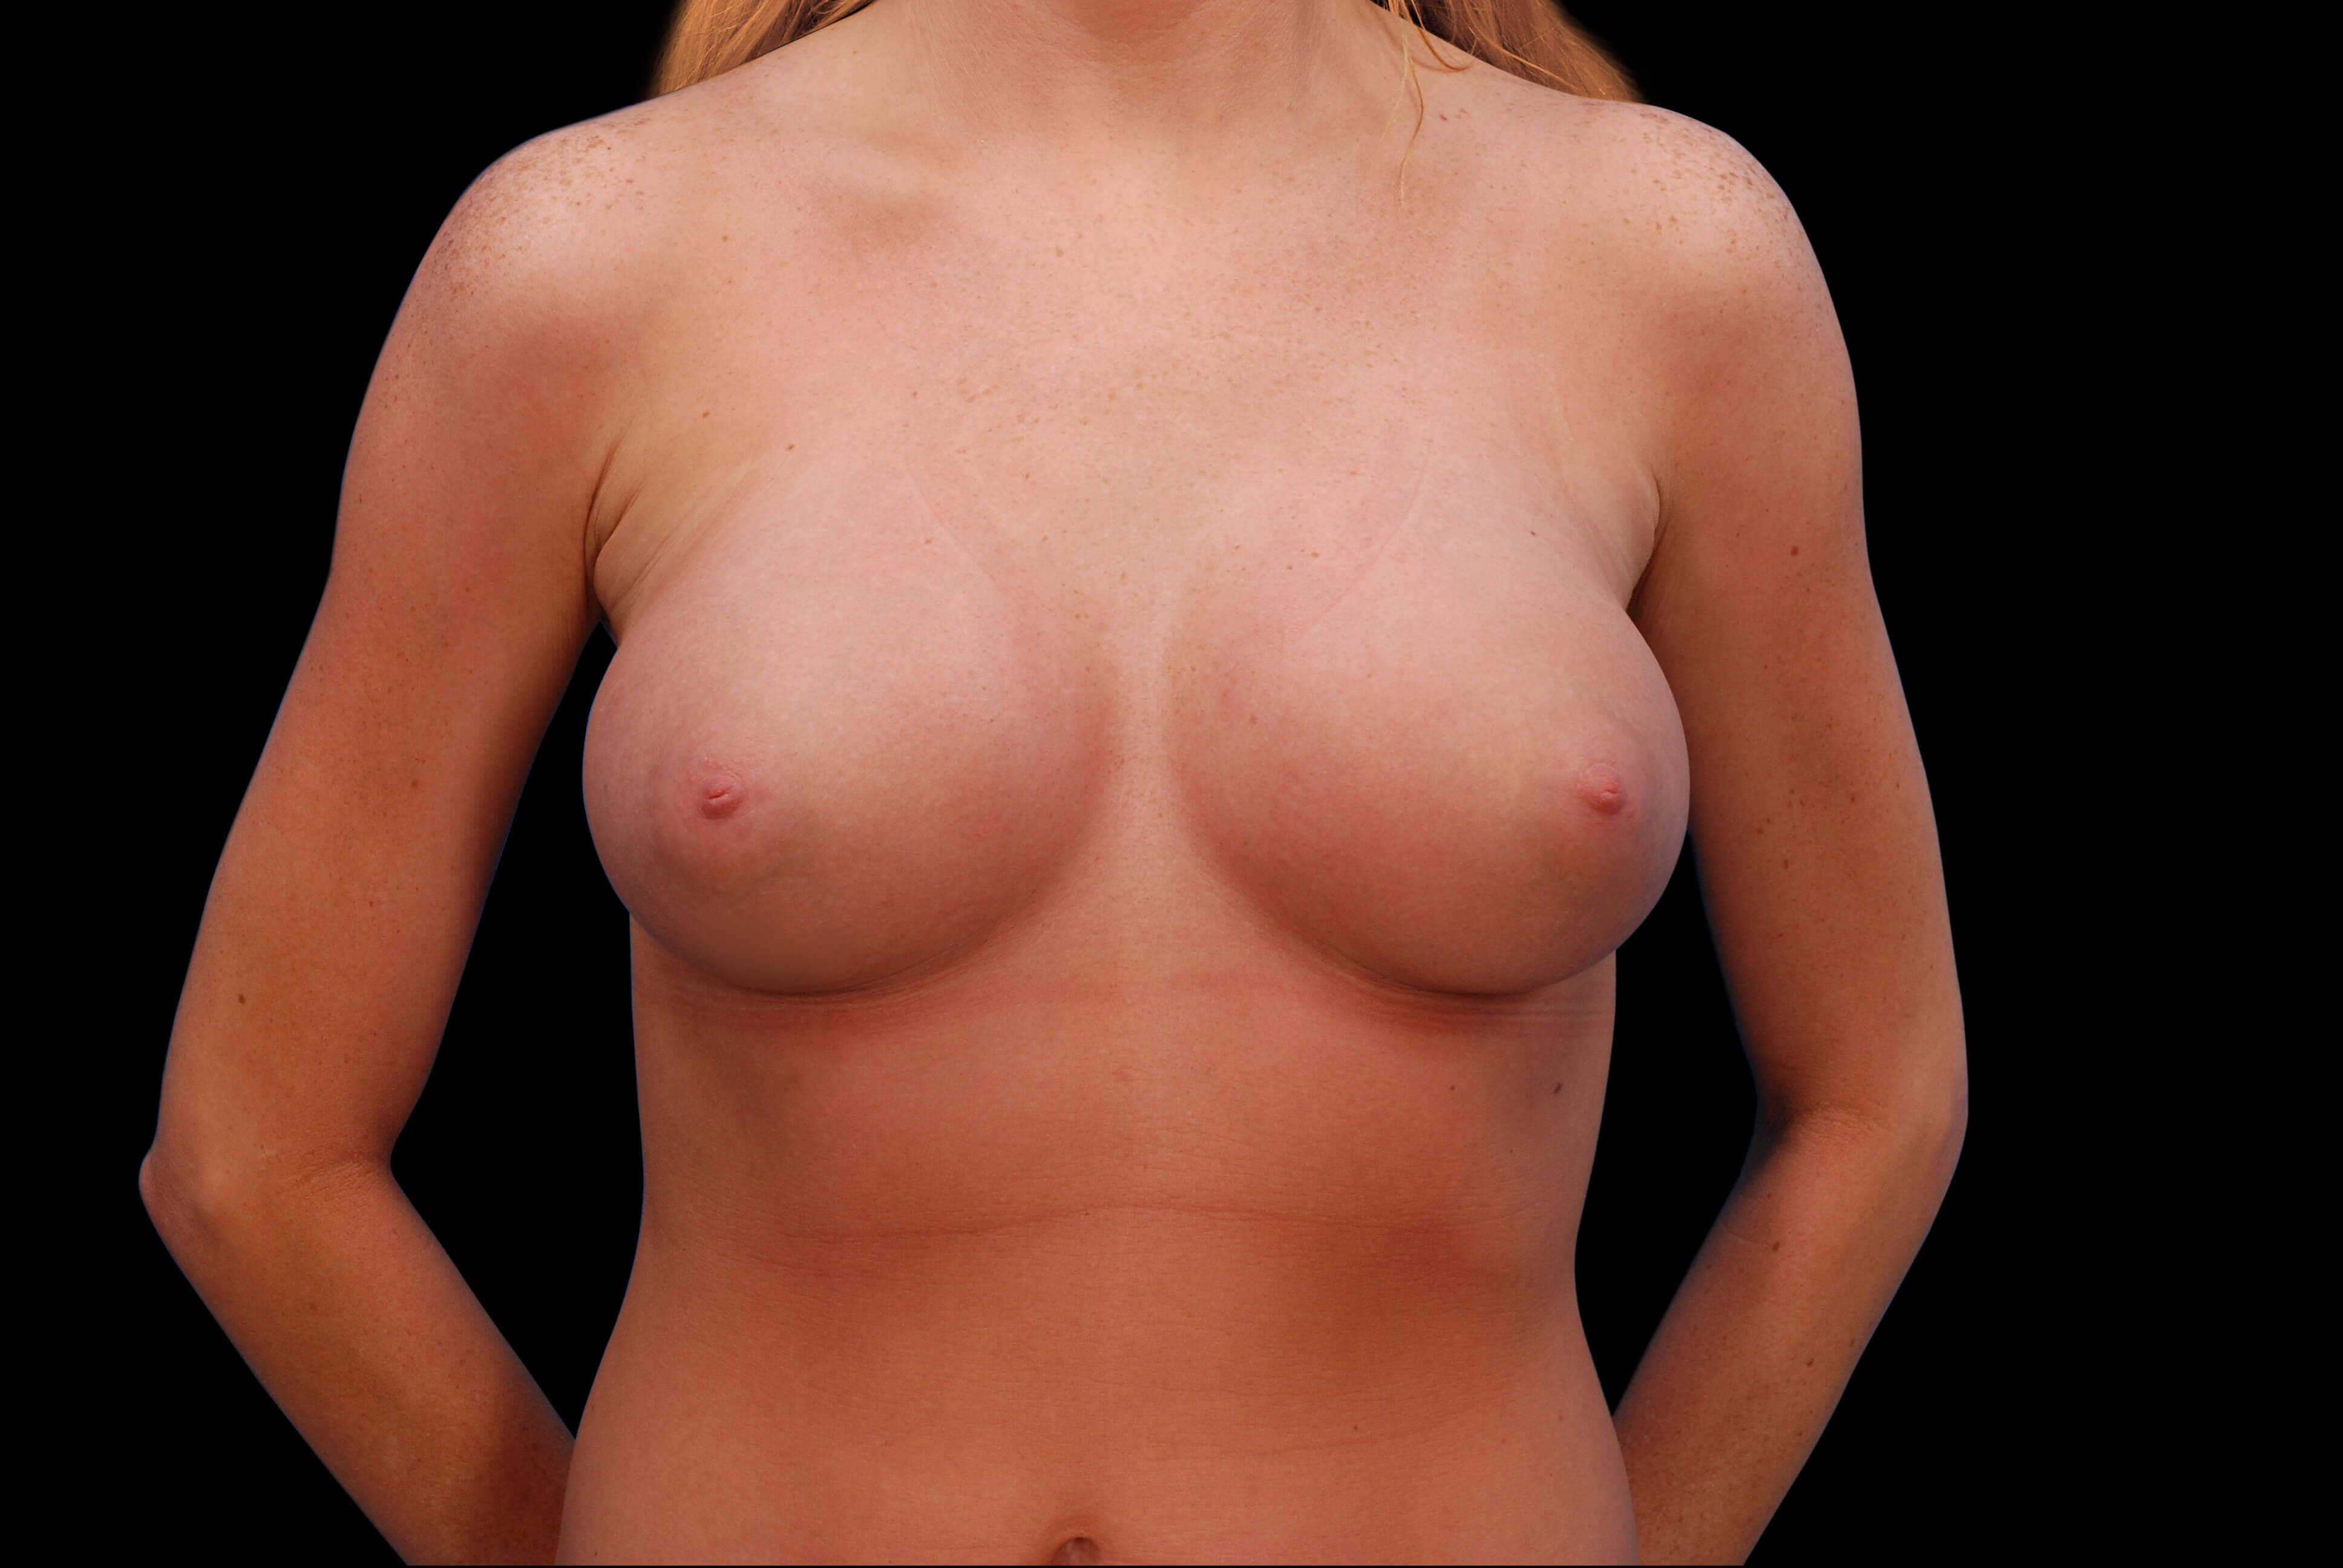 Breast Augmentation Surgery After